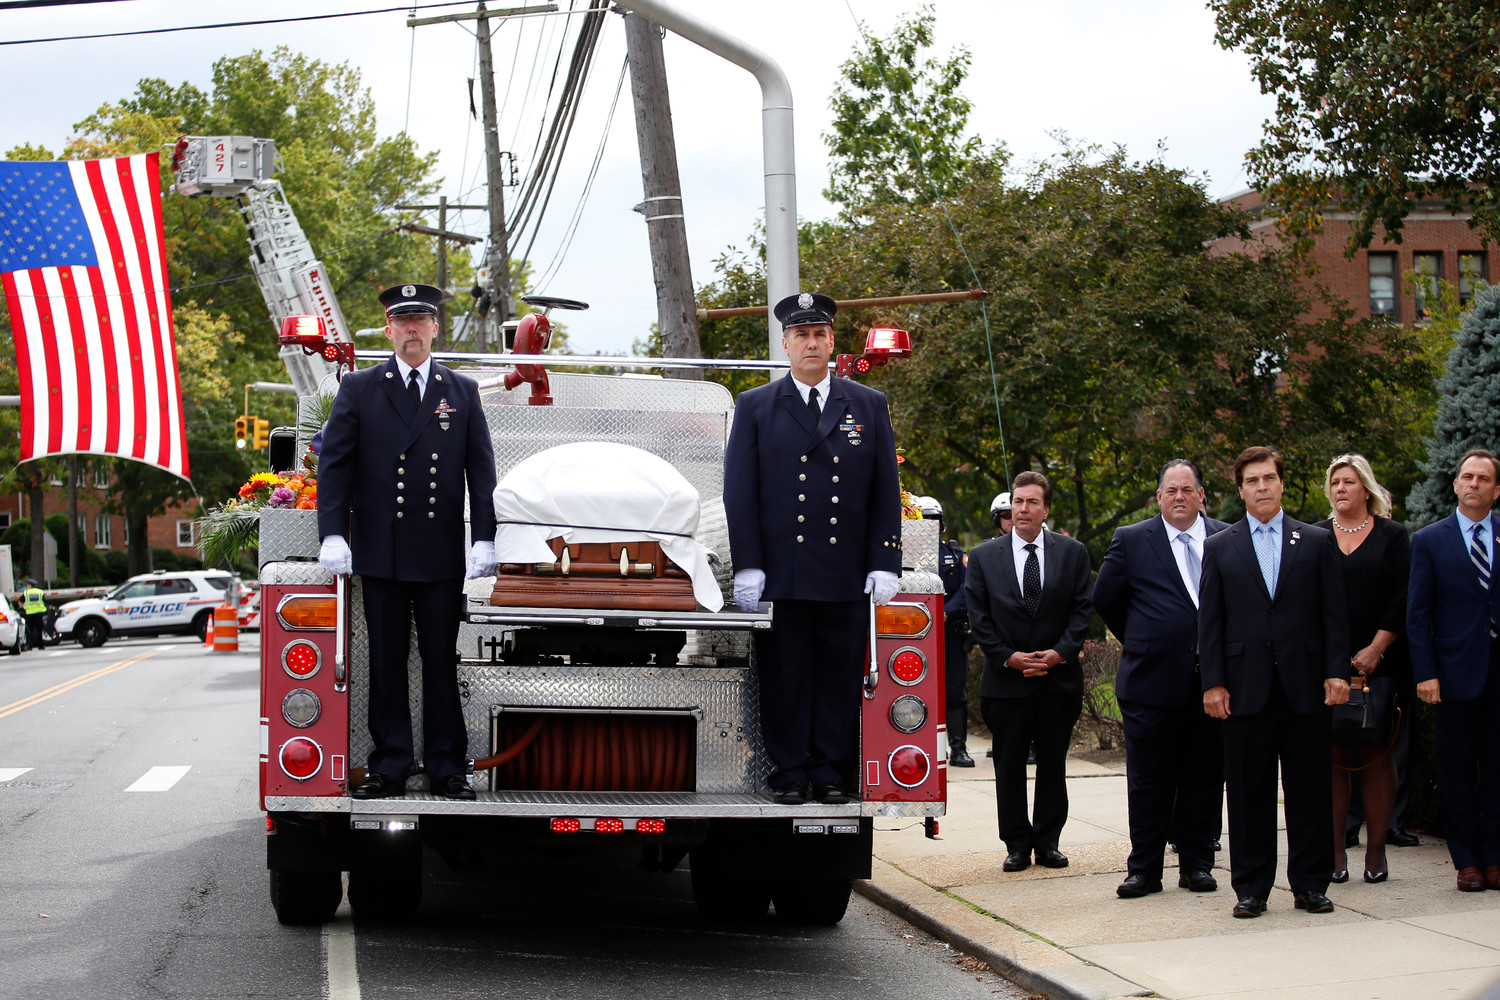 Former Lynbrook Fire Department Captain Joe Rice, left, and firefighter Mike Kenny stood on a fire truck that transported the body of Mayor William Hendrick from Perry Funeral Home in Lynbrook to St. Raymond's Roman Catholic Church in East Rockaway for his funeral Mass on Monday. Village Clerk John Giordano, third from left, Trustee Mike Hawxhurst, acting Mayor and former Deputy Mayor Alan Beach, Trustee Ann Marie Reardon and Trustee Hilary Becker also paid their respects.